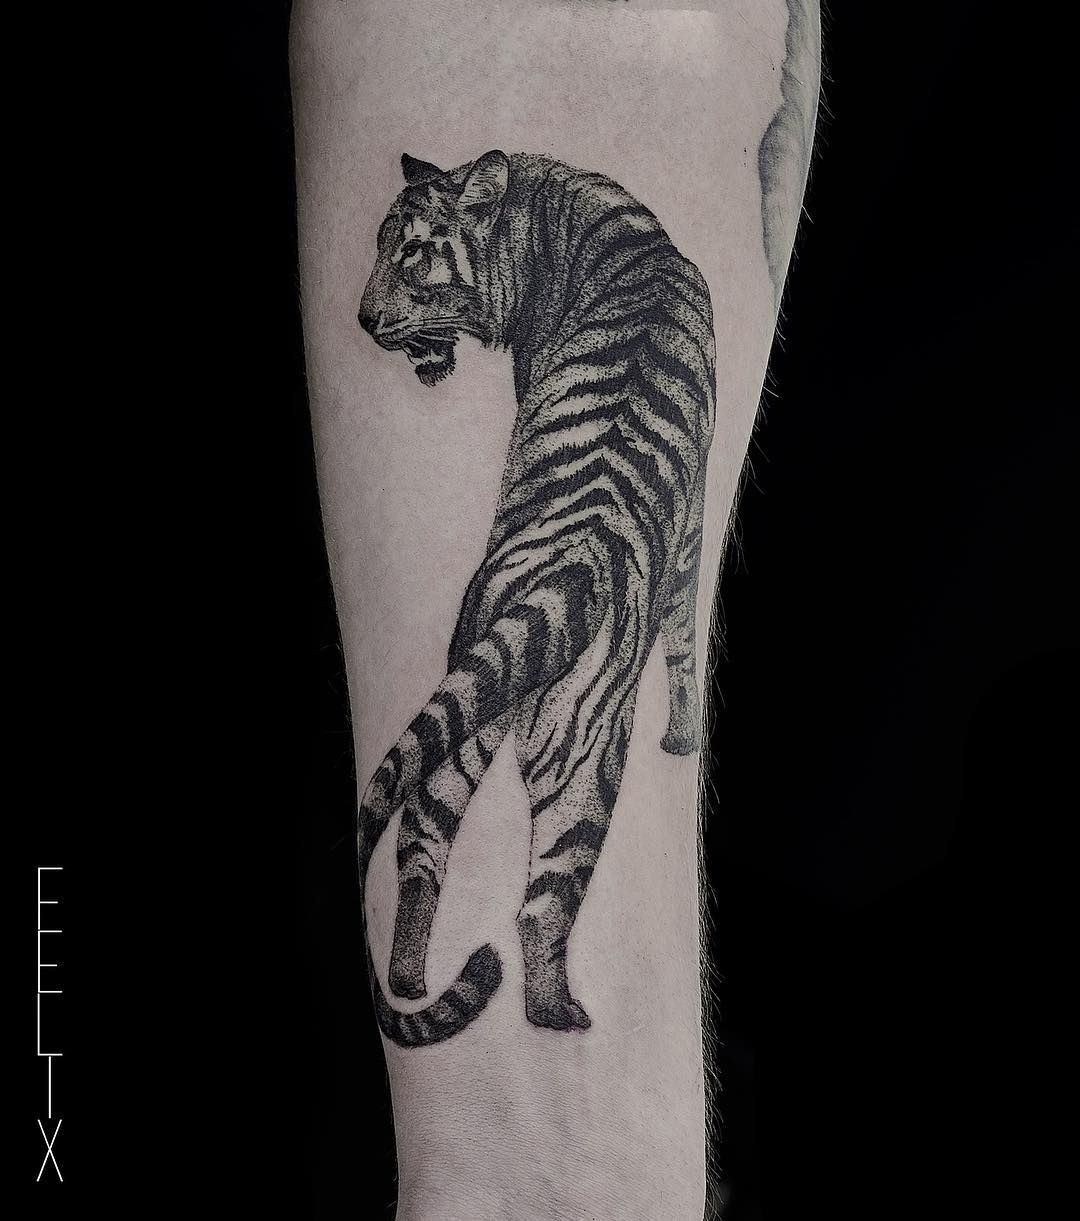 tiger tattoos meaning and design ideas tiger tattoo ideas pinterest blackwork und instagram. Black Bedroom Furniture Sets. Home Design Ideas